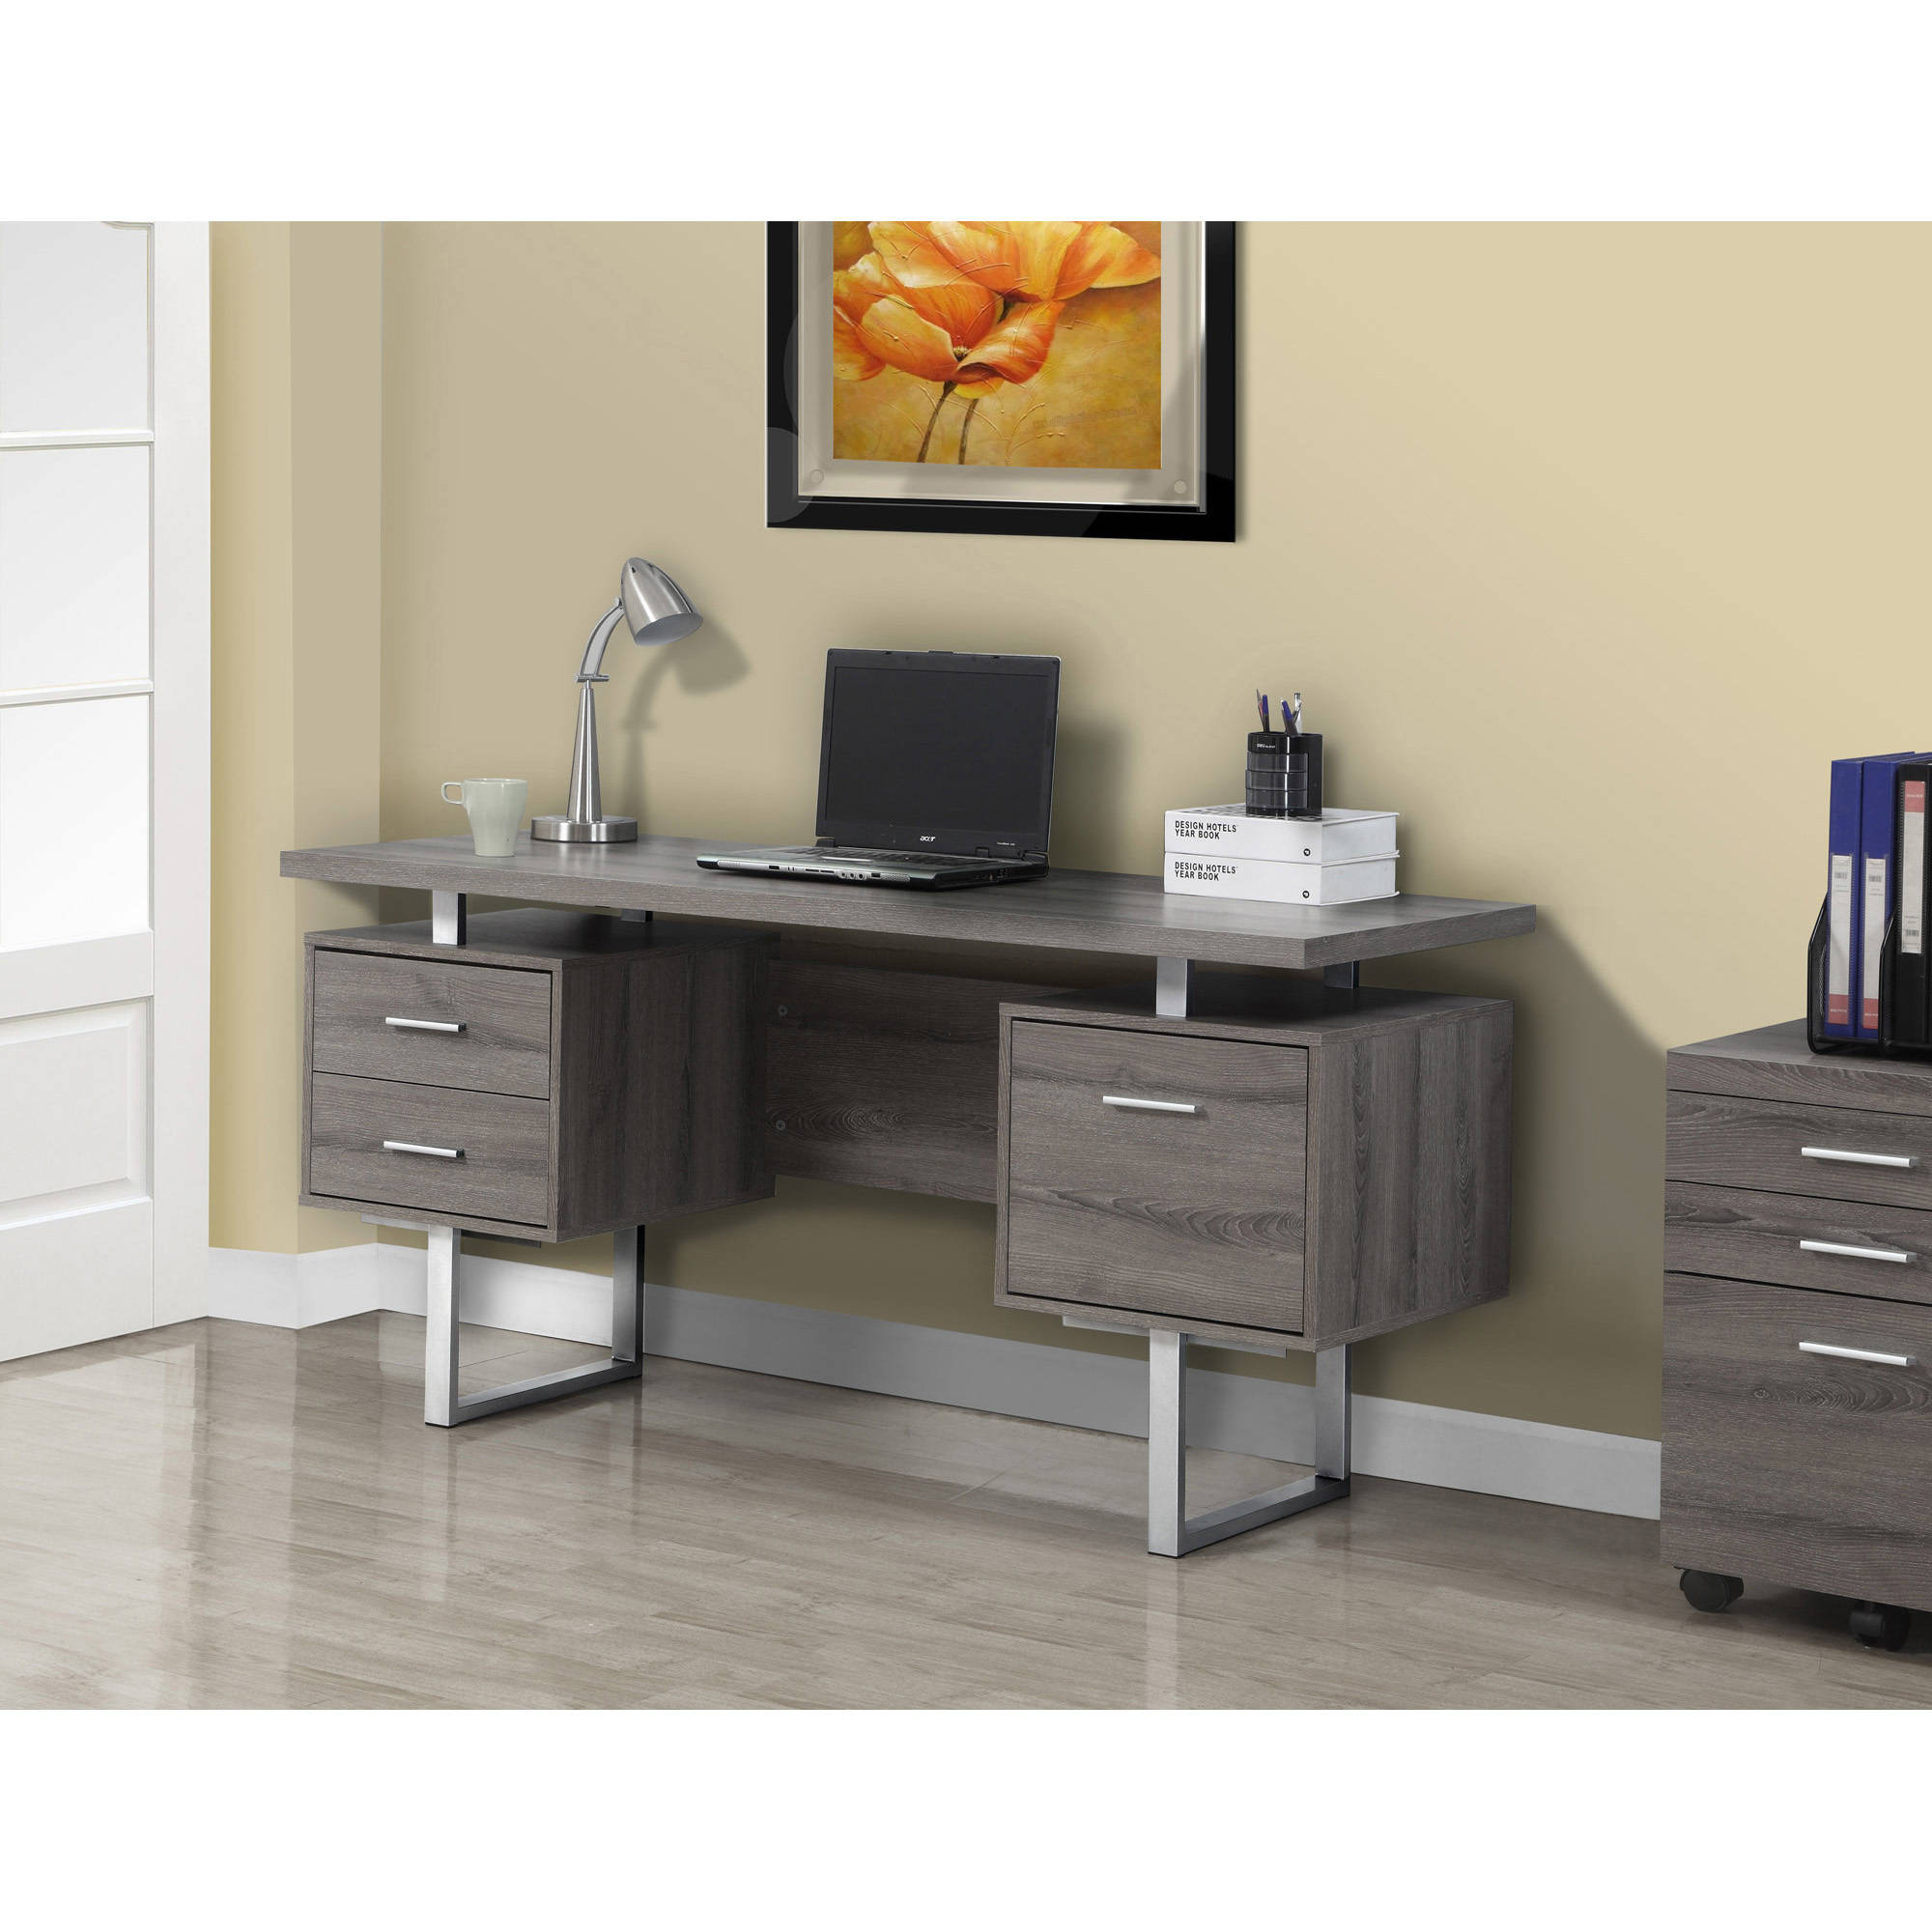 Monarch computer desk 60l multiple colors walmart com